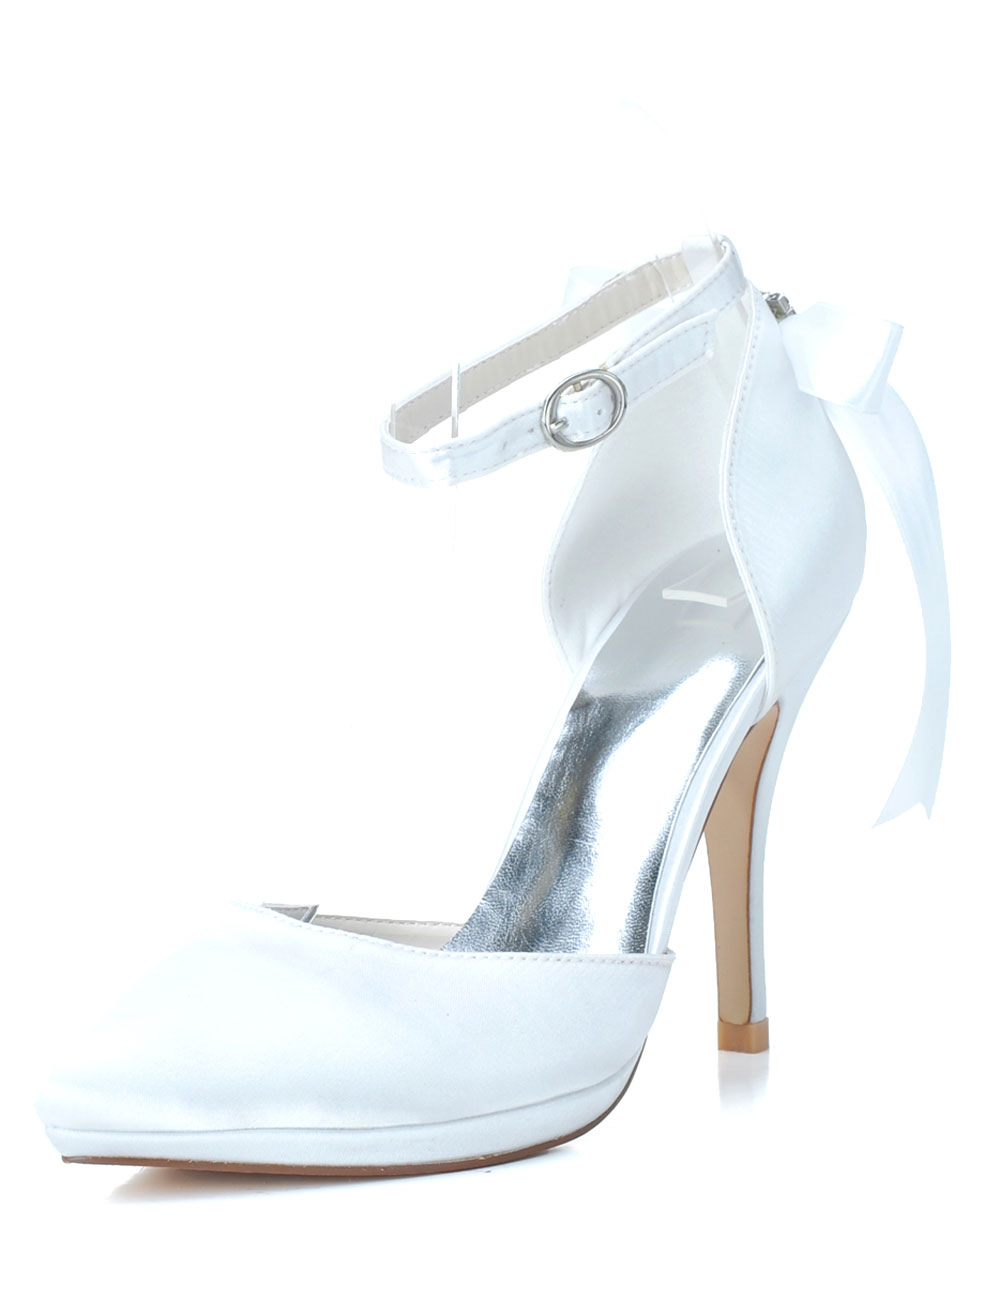 Buy Satin Pointed Toe Ankle Strap Bows Evening and Bridal Platforms for $49.49 in Milanoo store